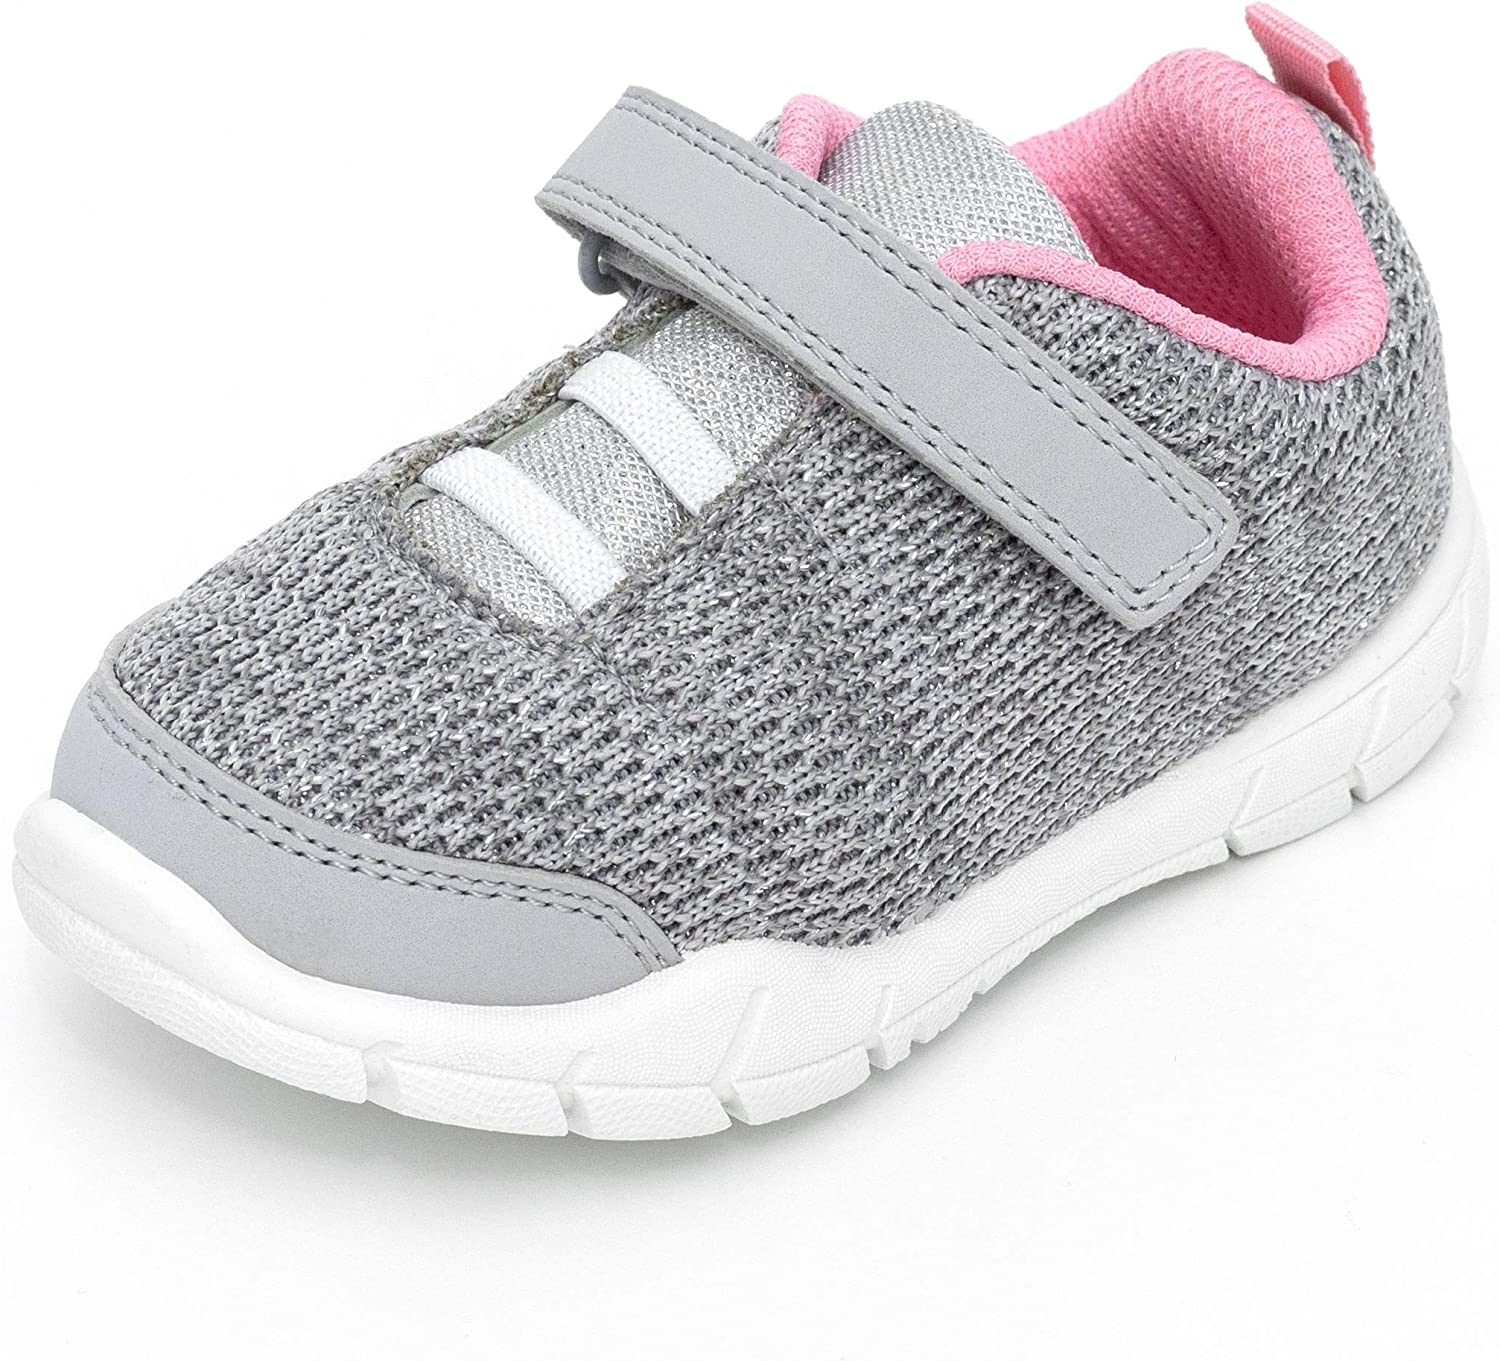 Simple Joys Japan Maker New by Carter's Child Knitted Ranking TOP10 Athletic Shoe Sneak Unisex